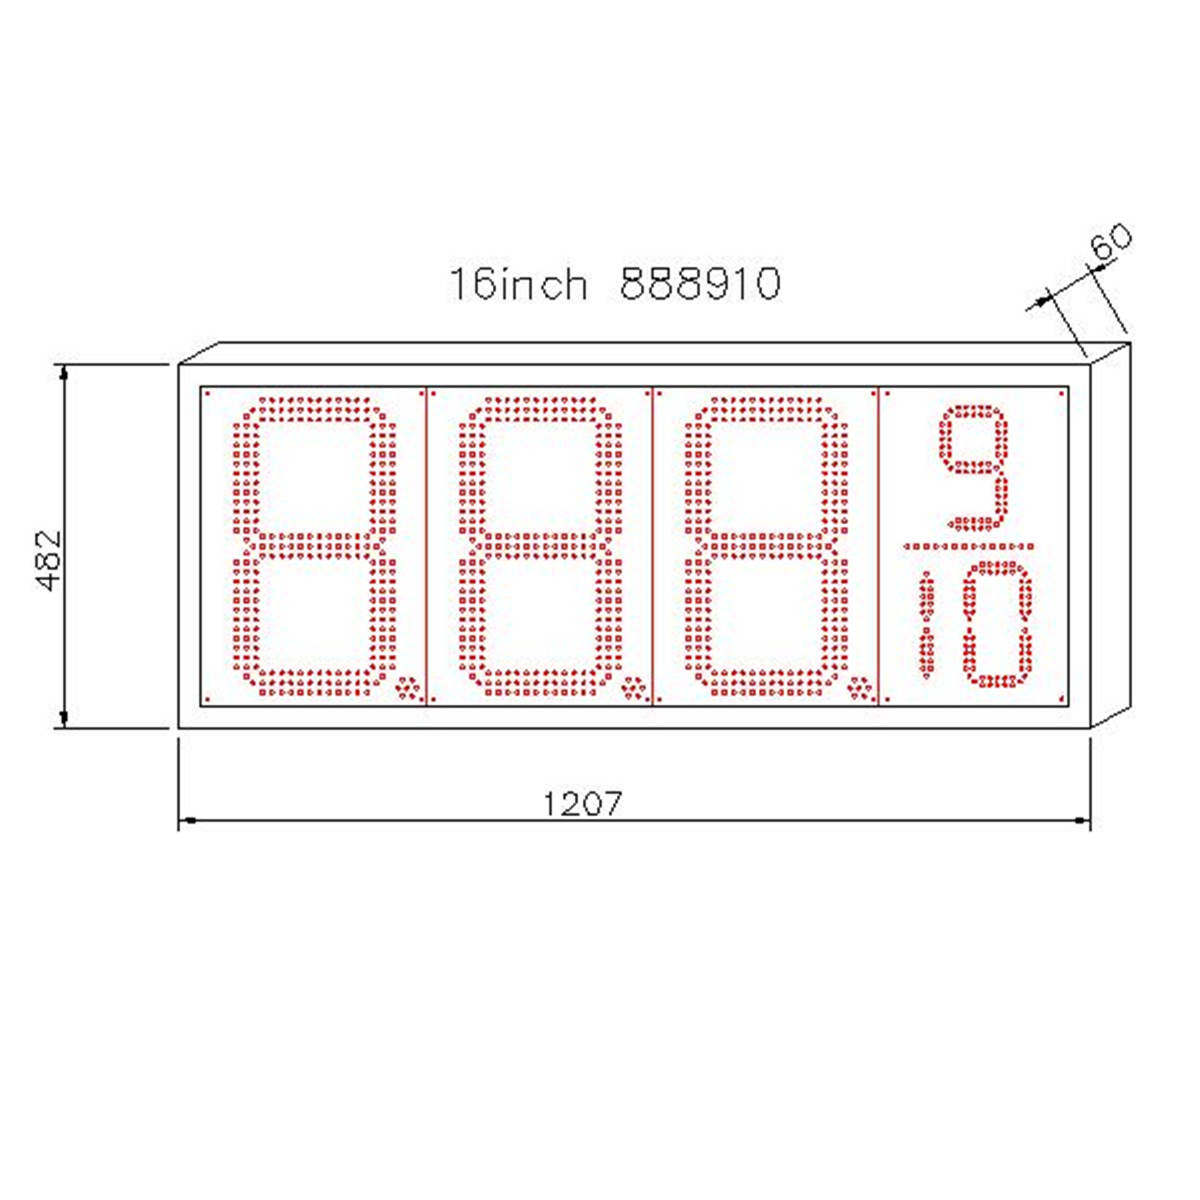 American Waterproof 16 Inch White Led Price Gas Signs:GAS16Z8889W